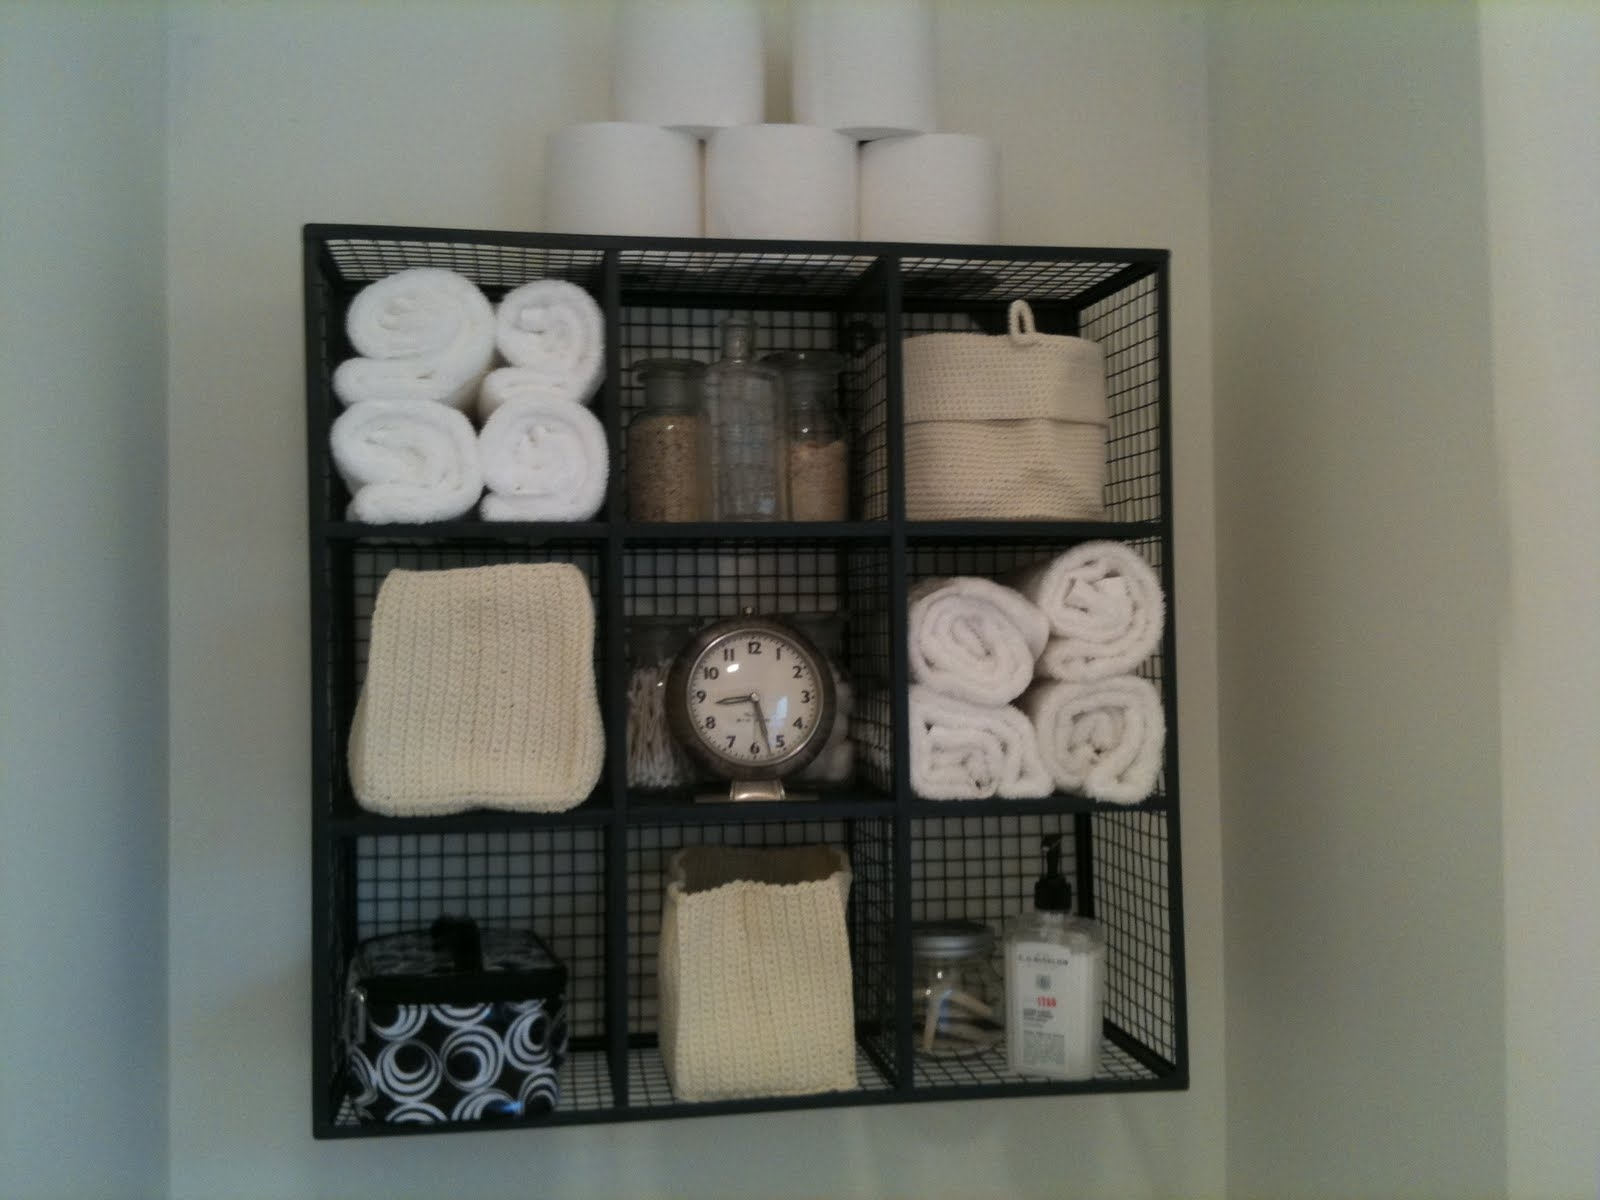 Bathroom Storage Above Toilet Ideas